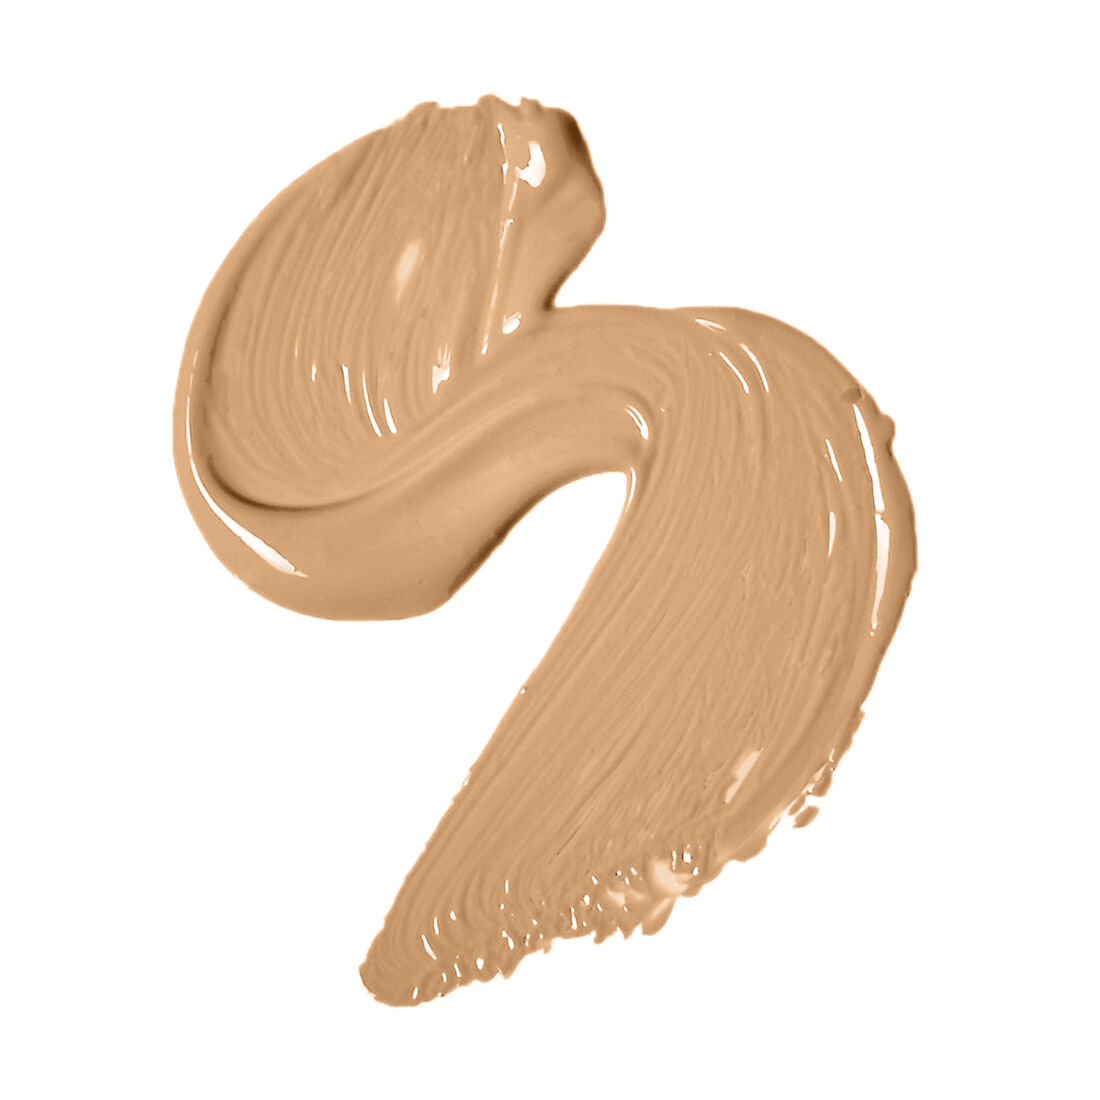 Hydrating Camo Concealer by e.l.f. #3